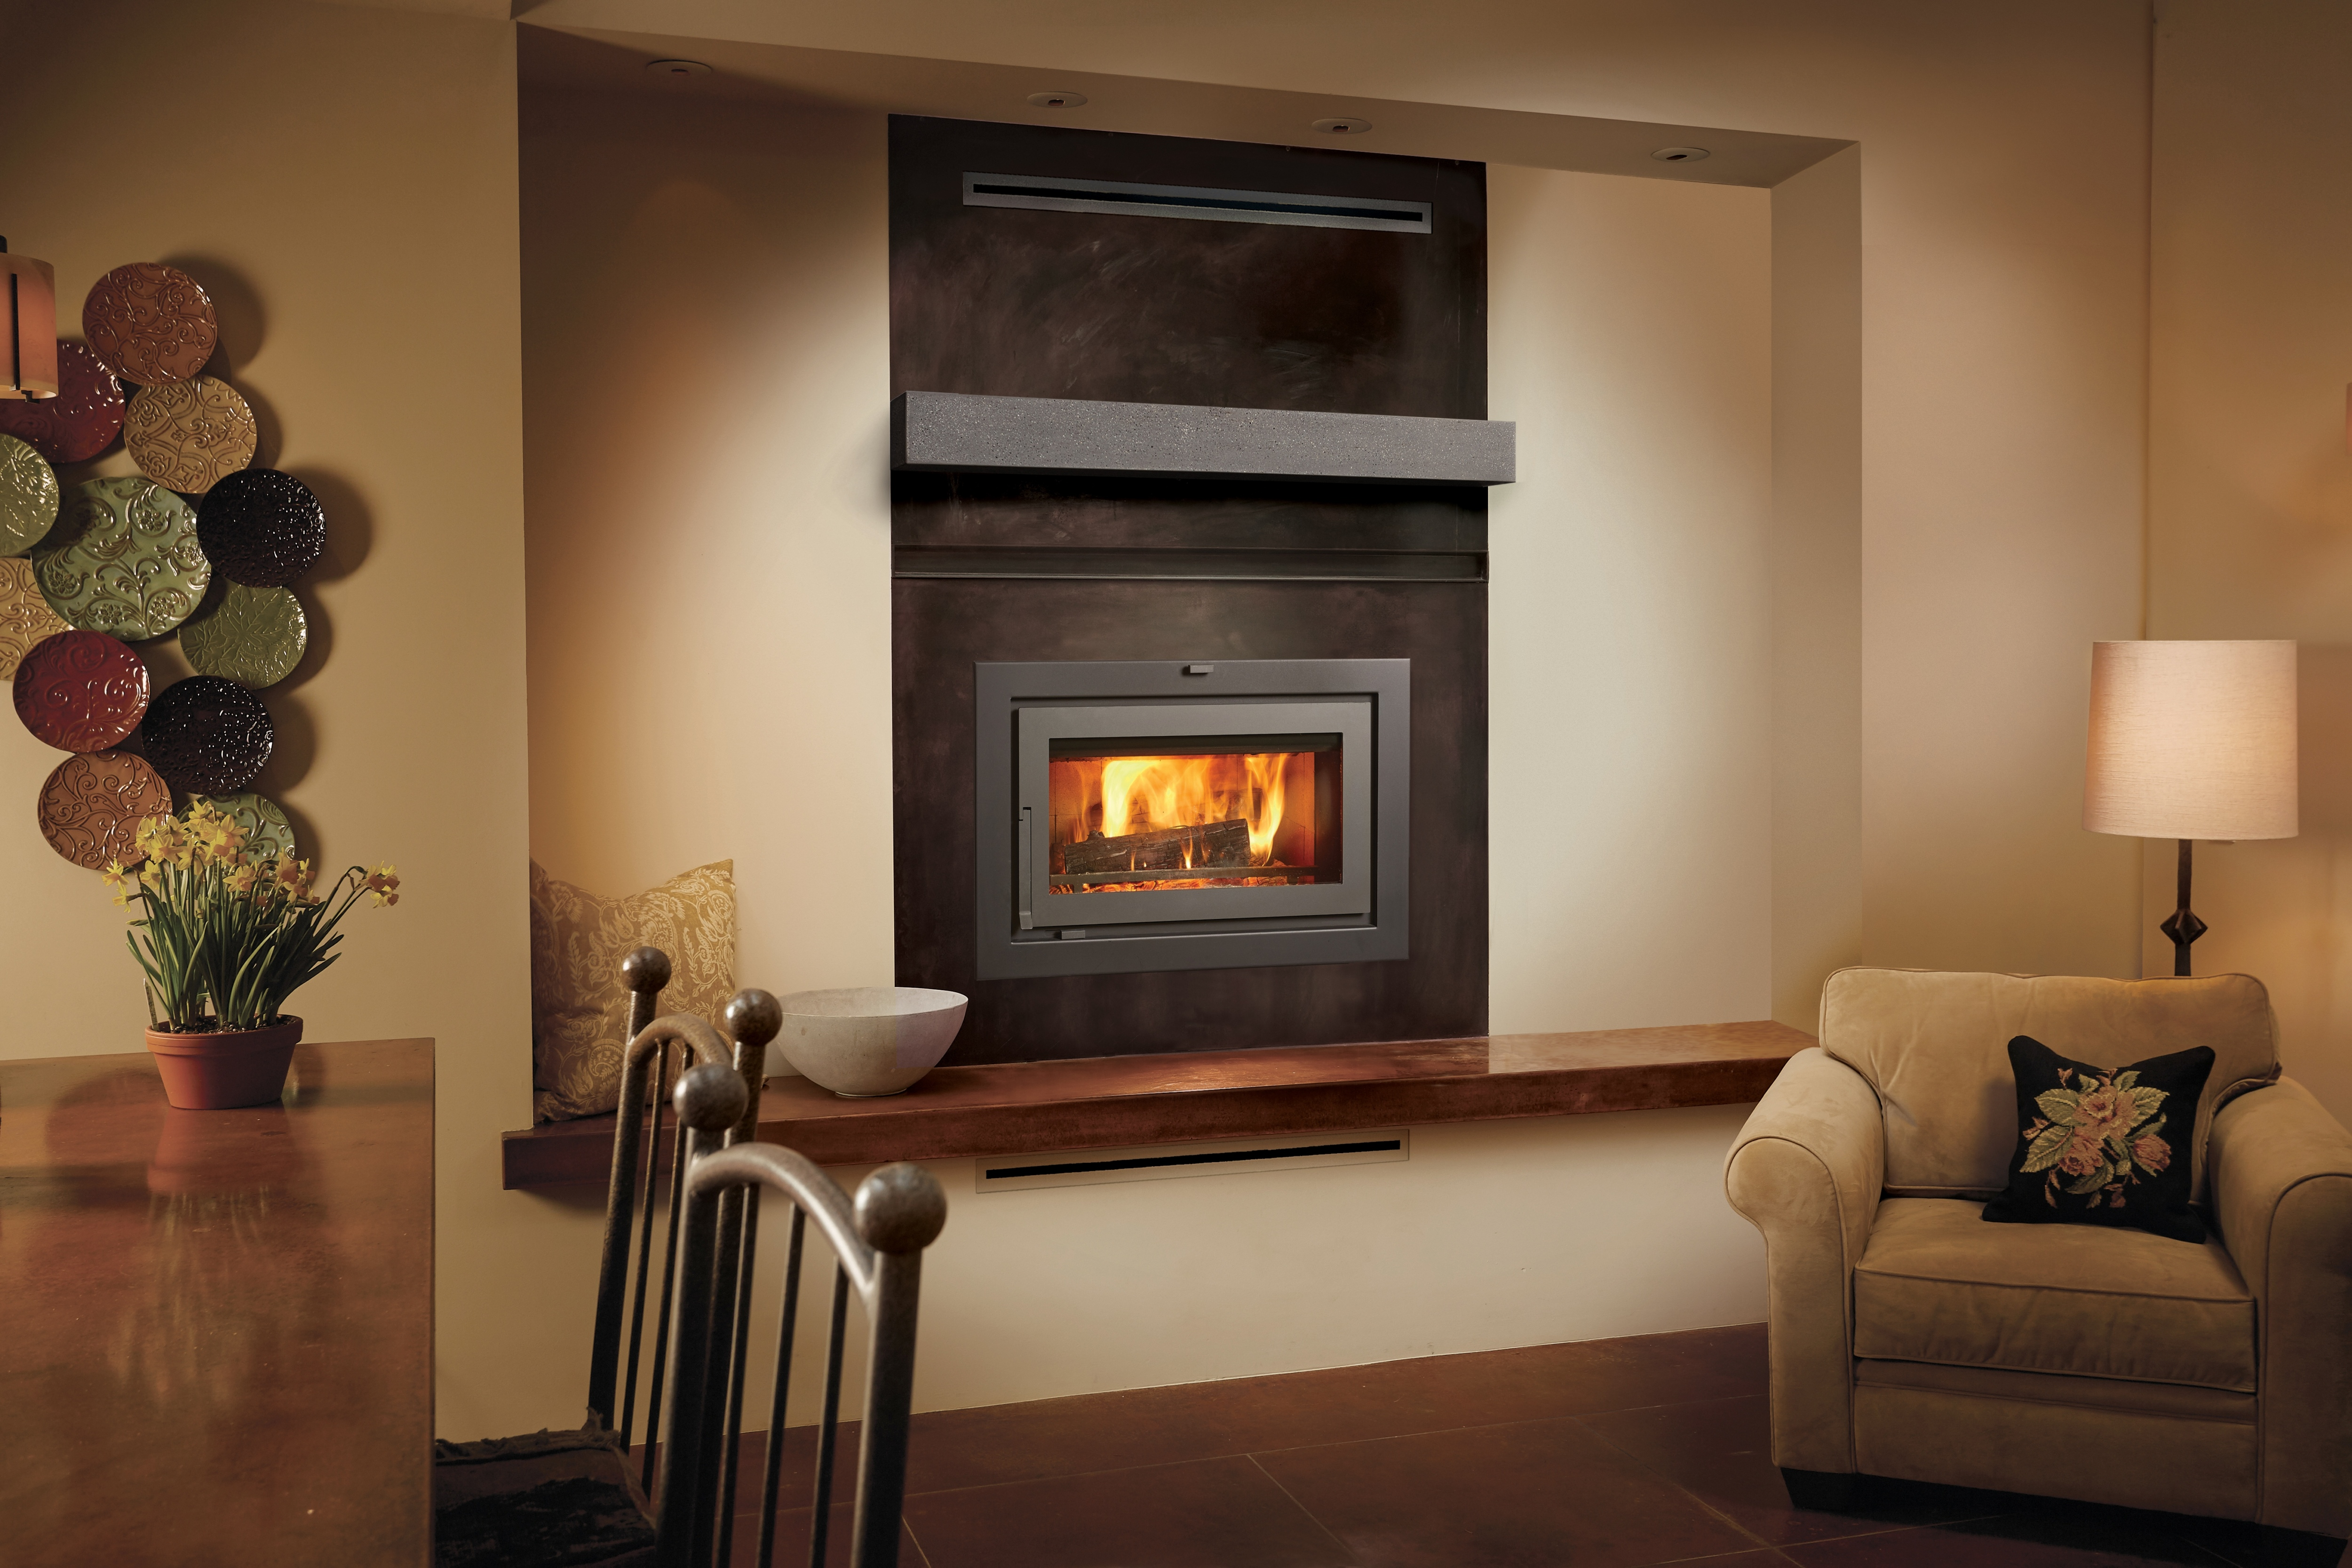 Another Image of the modern modern 42 Apex Clean Face woodburning fireplace featuring a traditional face.